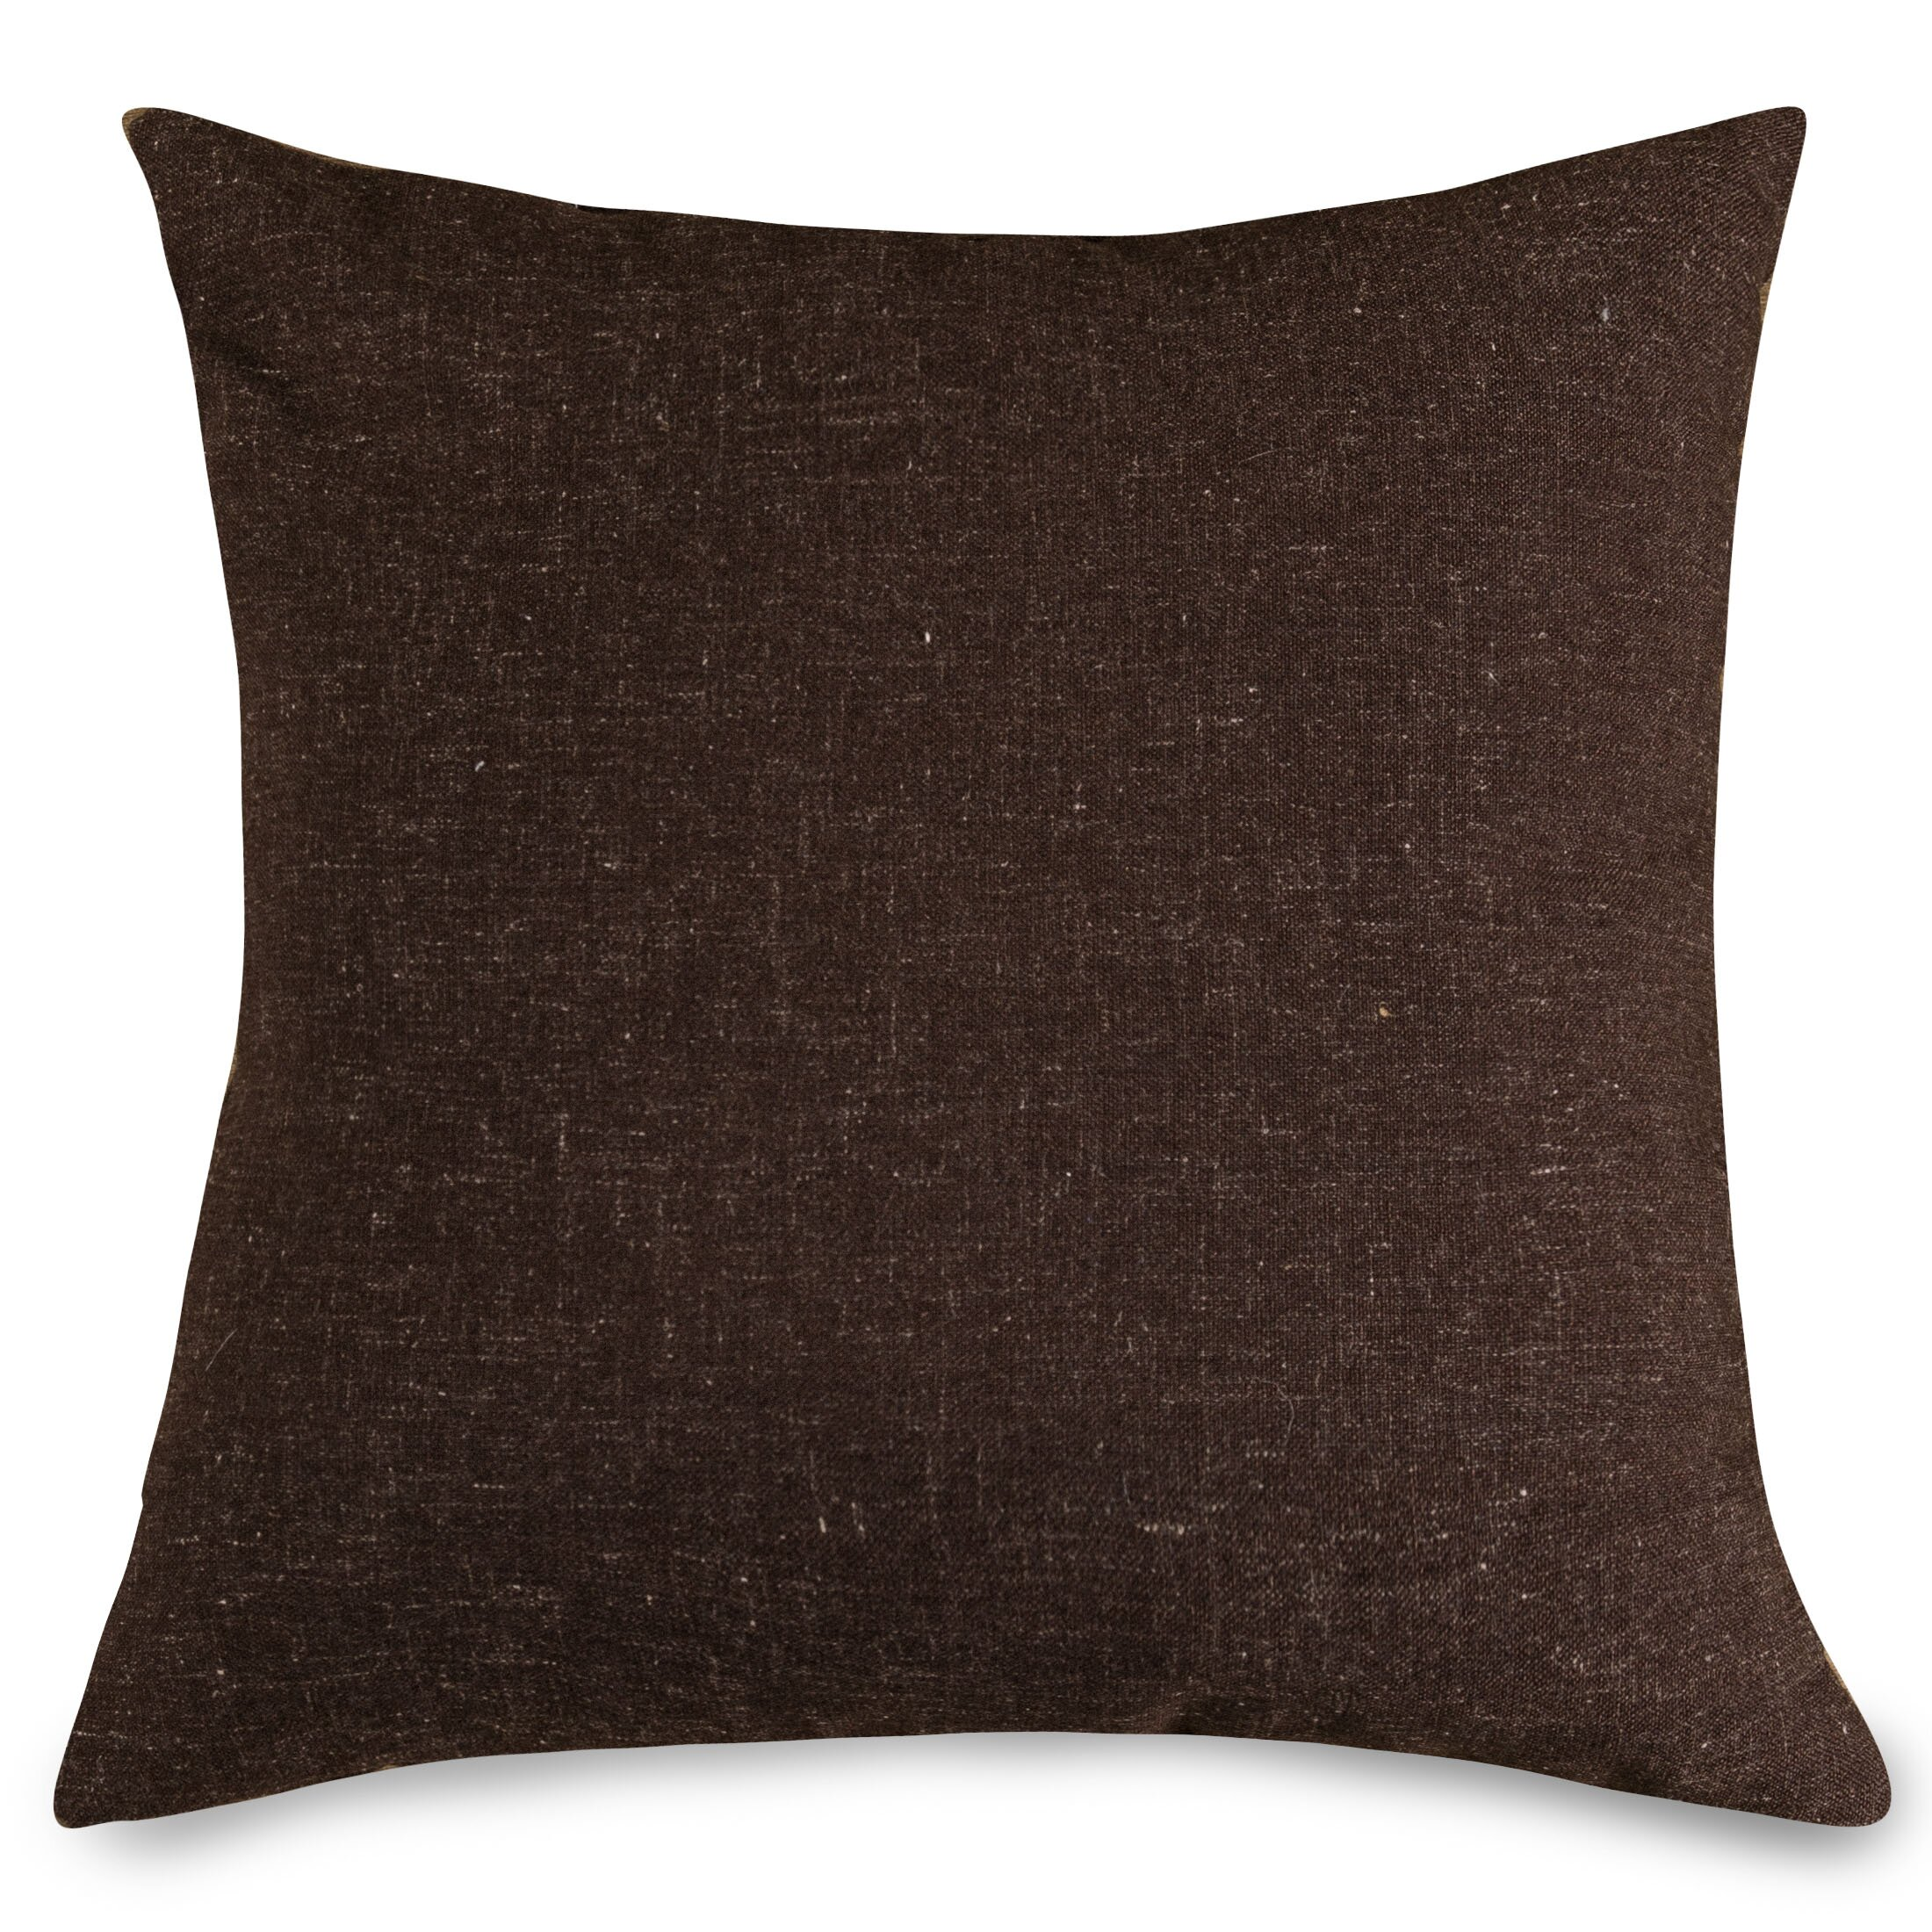 Throw Pillows Home Goods : Majestic Home Goods Wales Throw Pillow & Reviews Wayfair